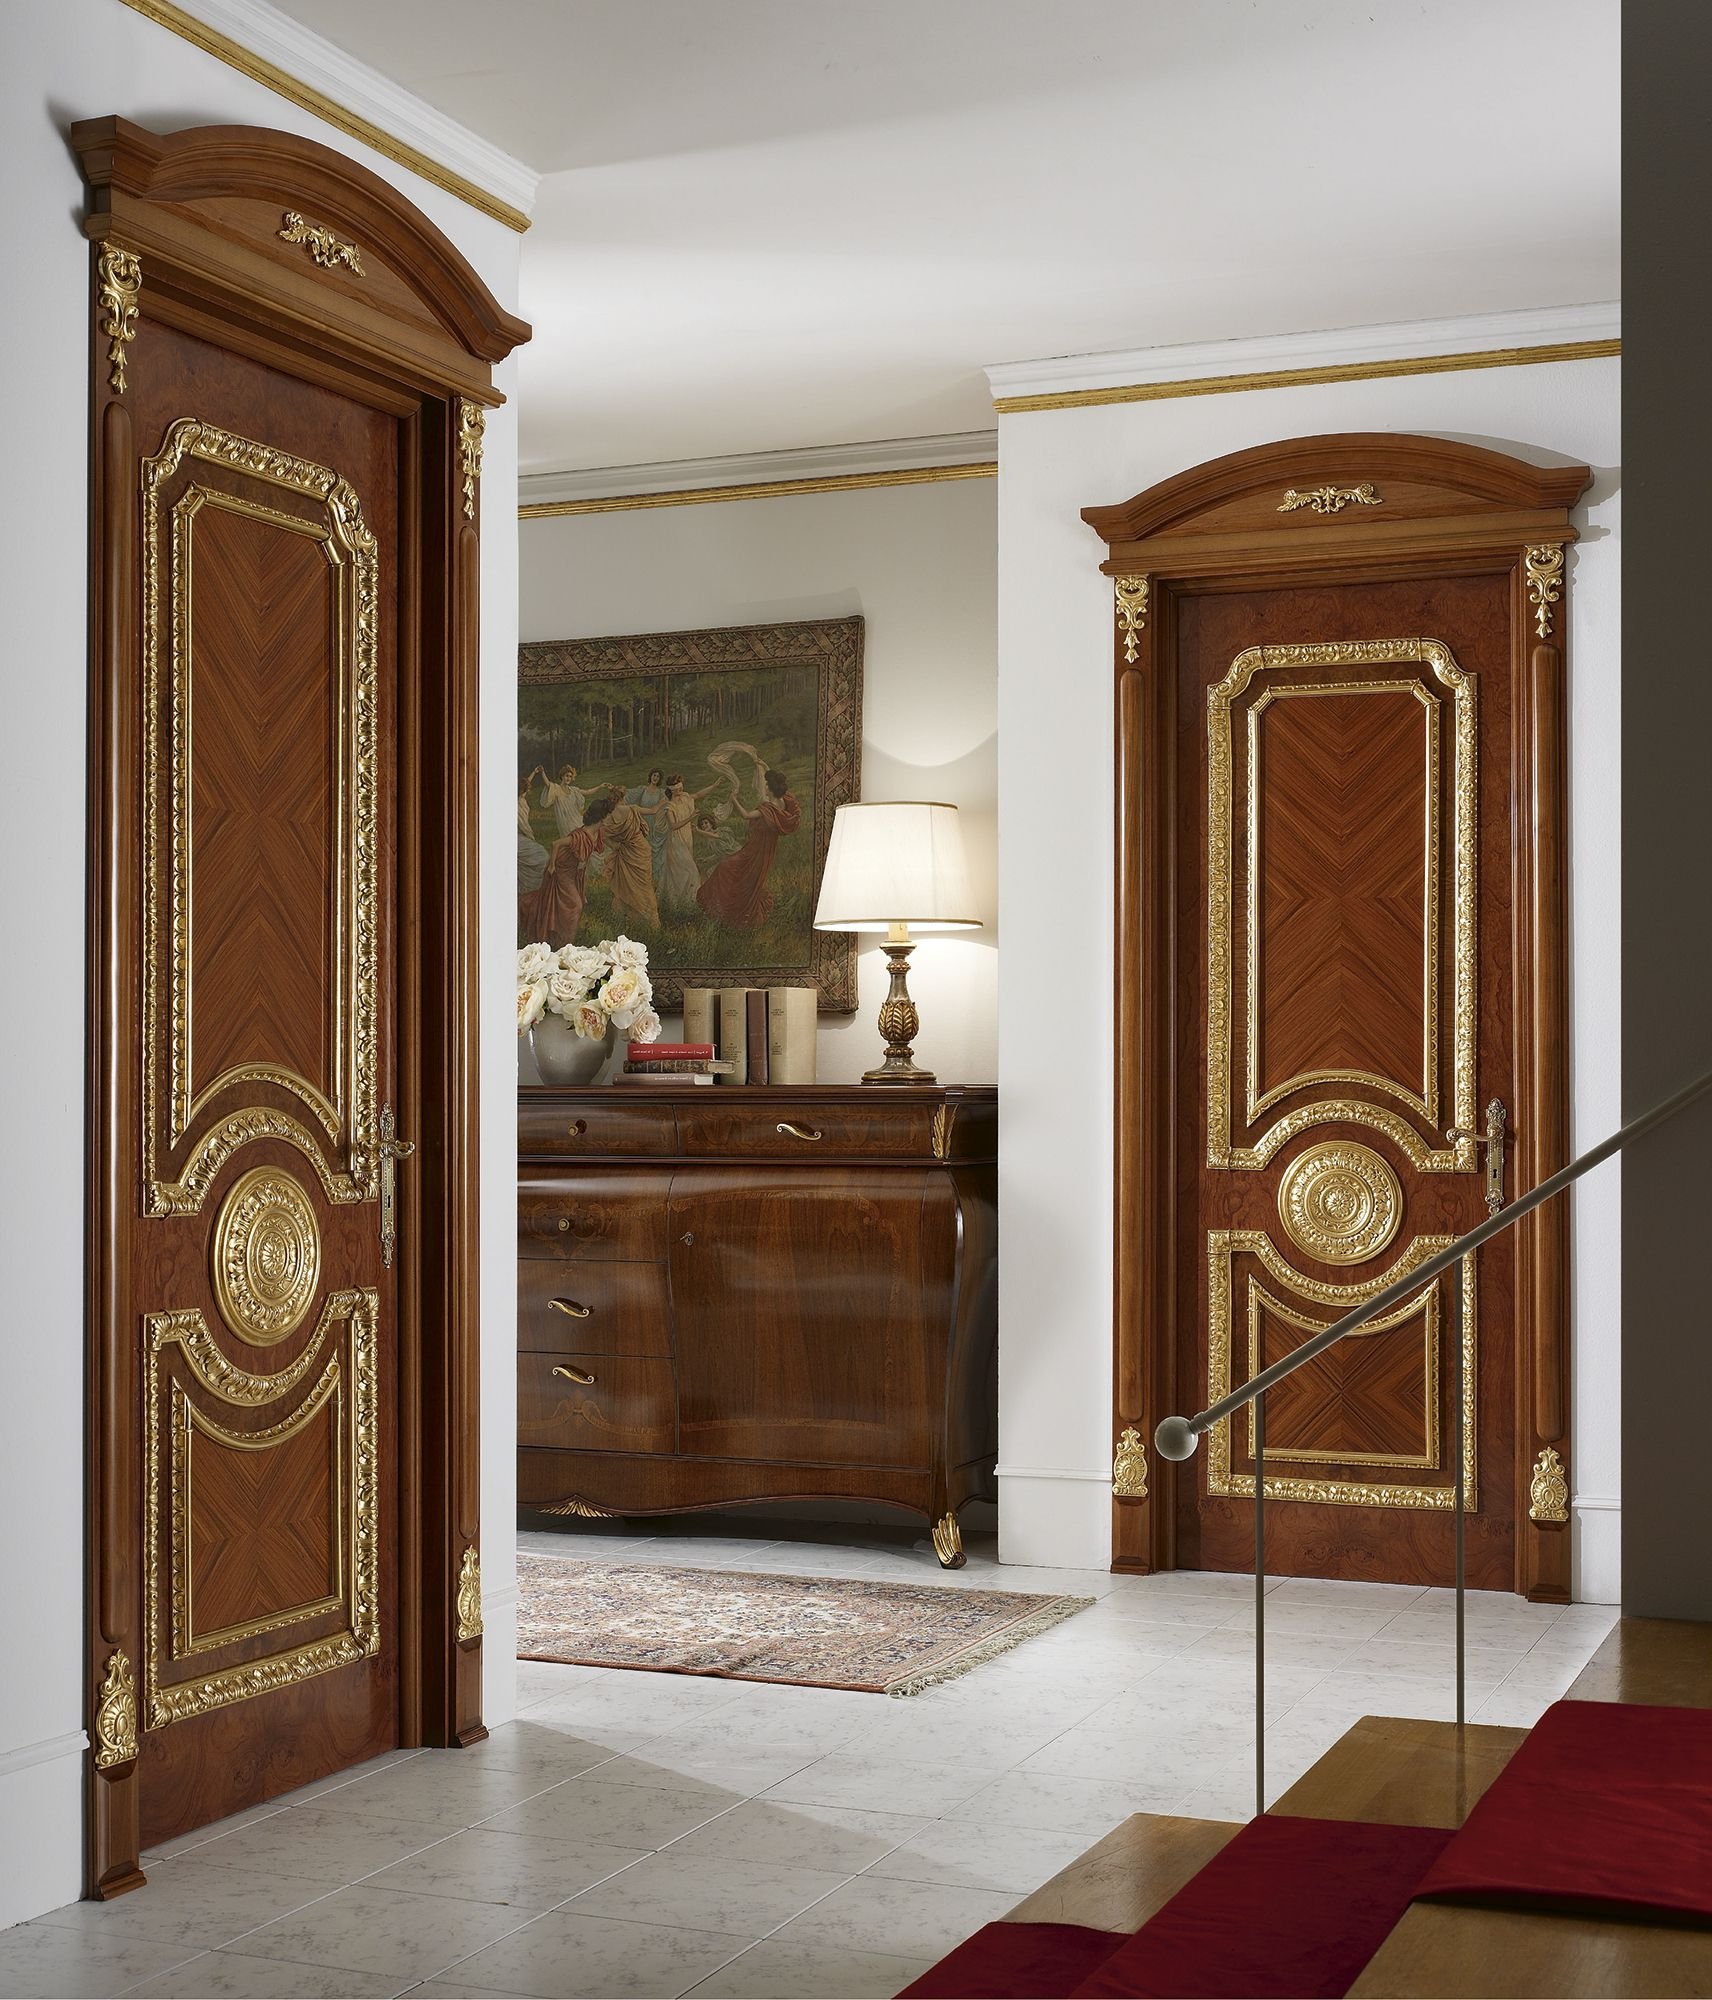 Luxurious interior design in a classic style with wooden classic doors